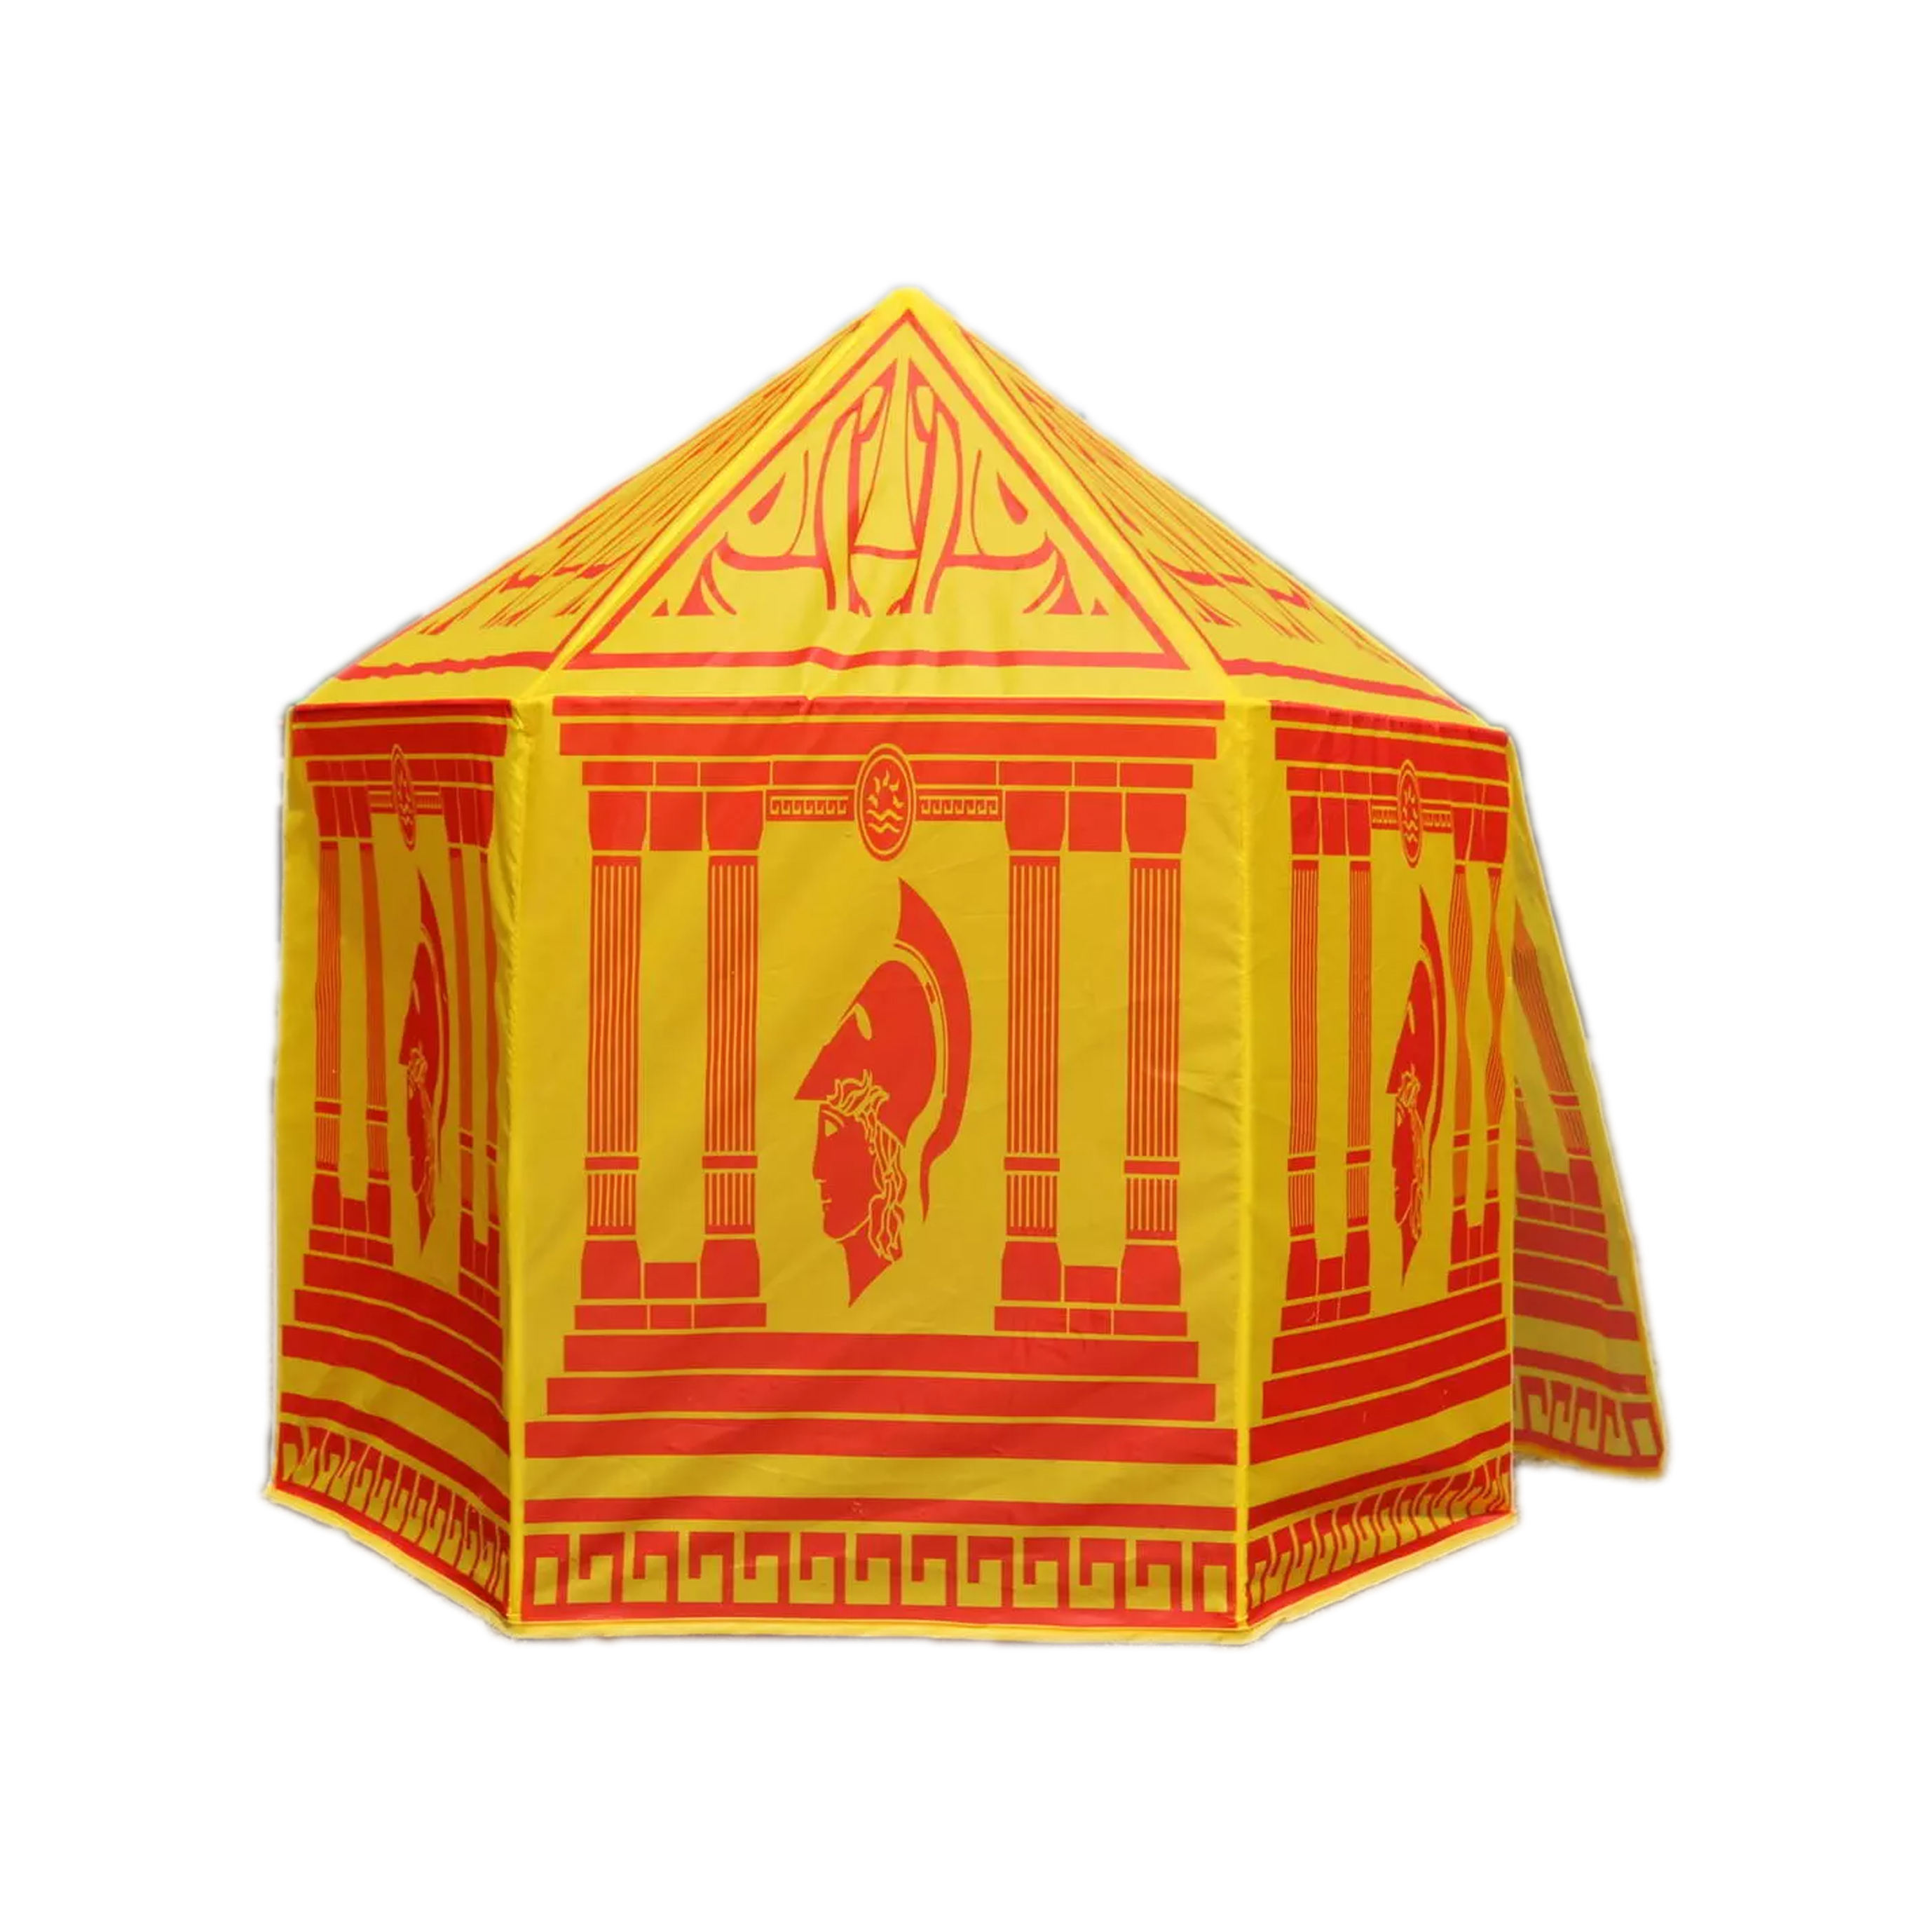 2020 Indian Tent Toy Tent For Kids Play House For Children Baby House Toy Tents